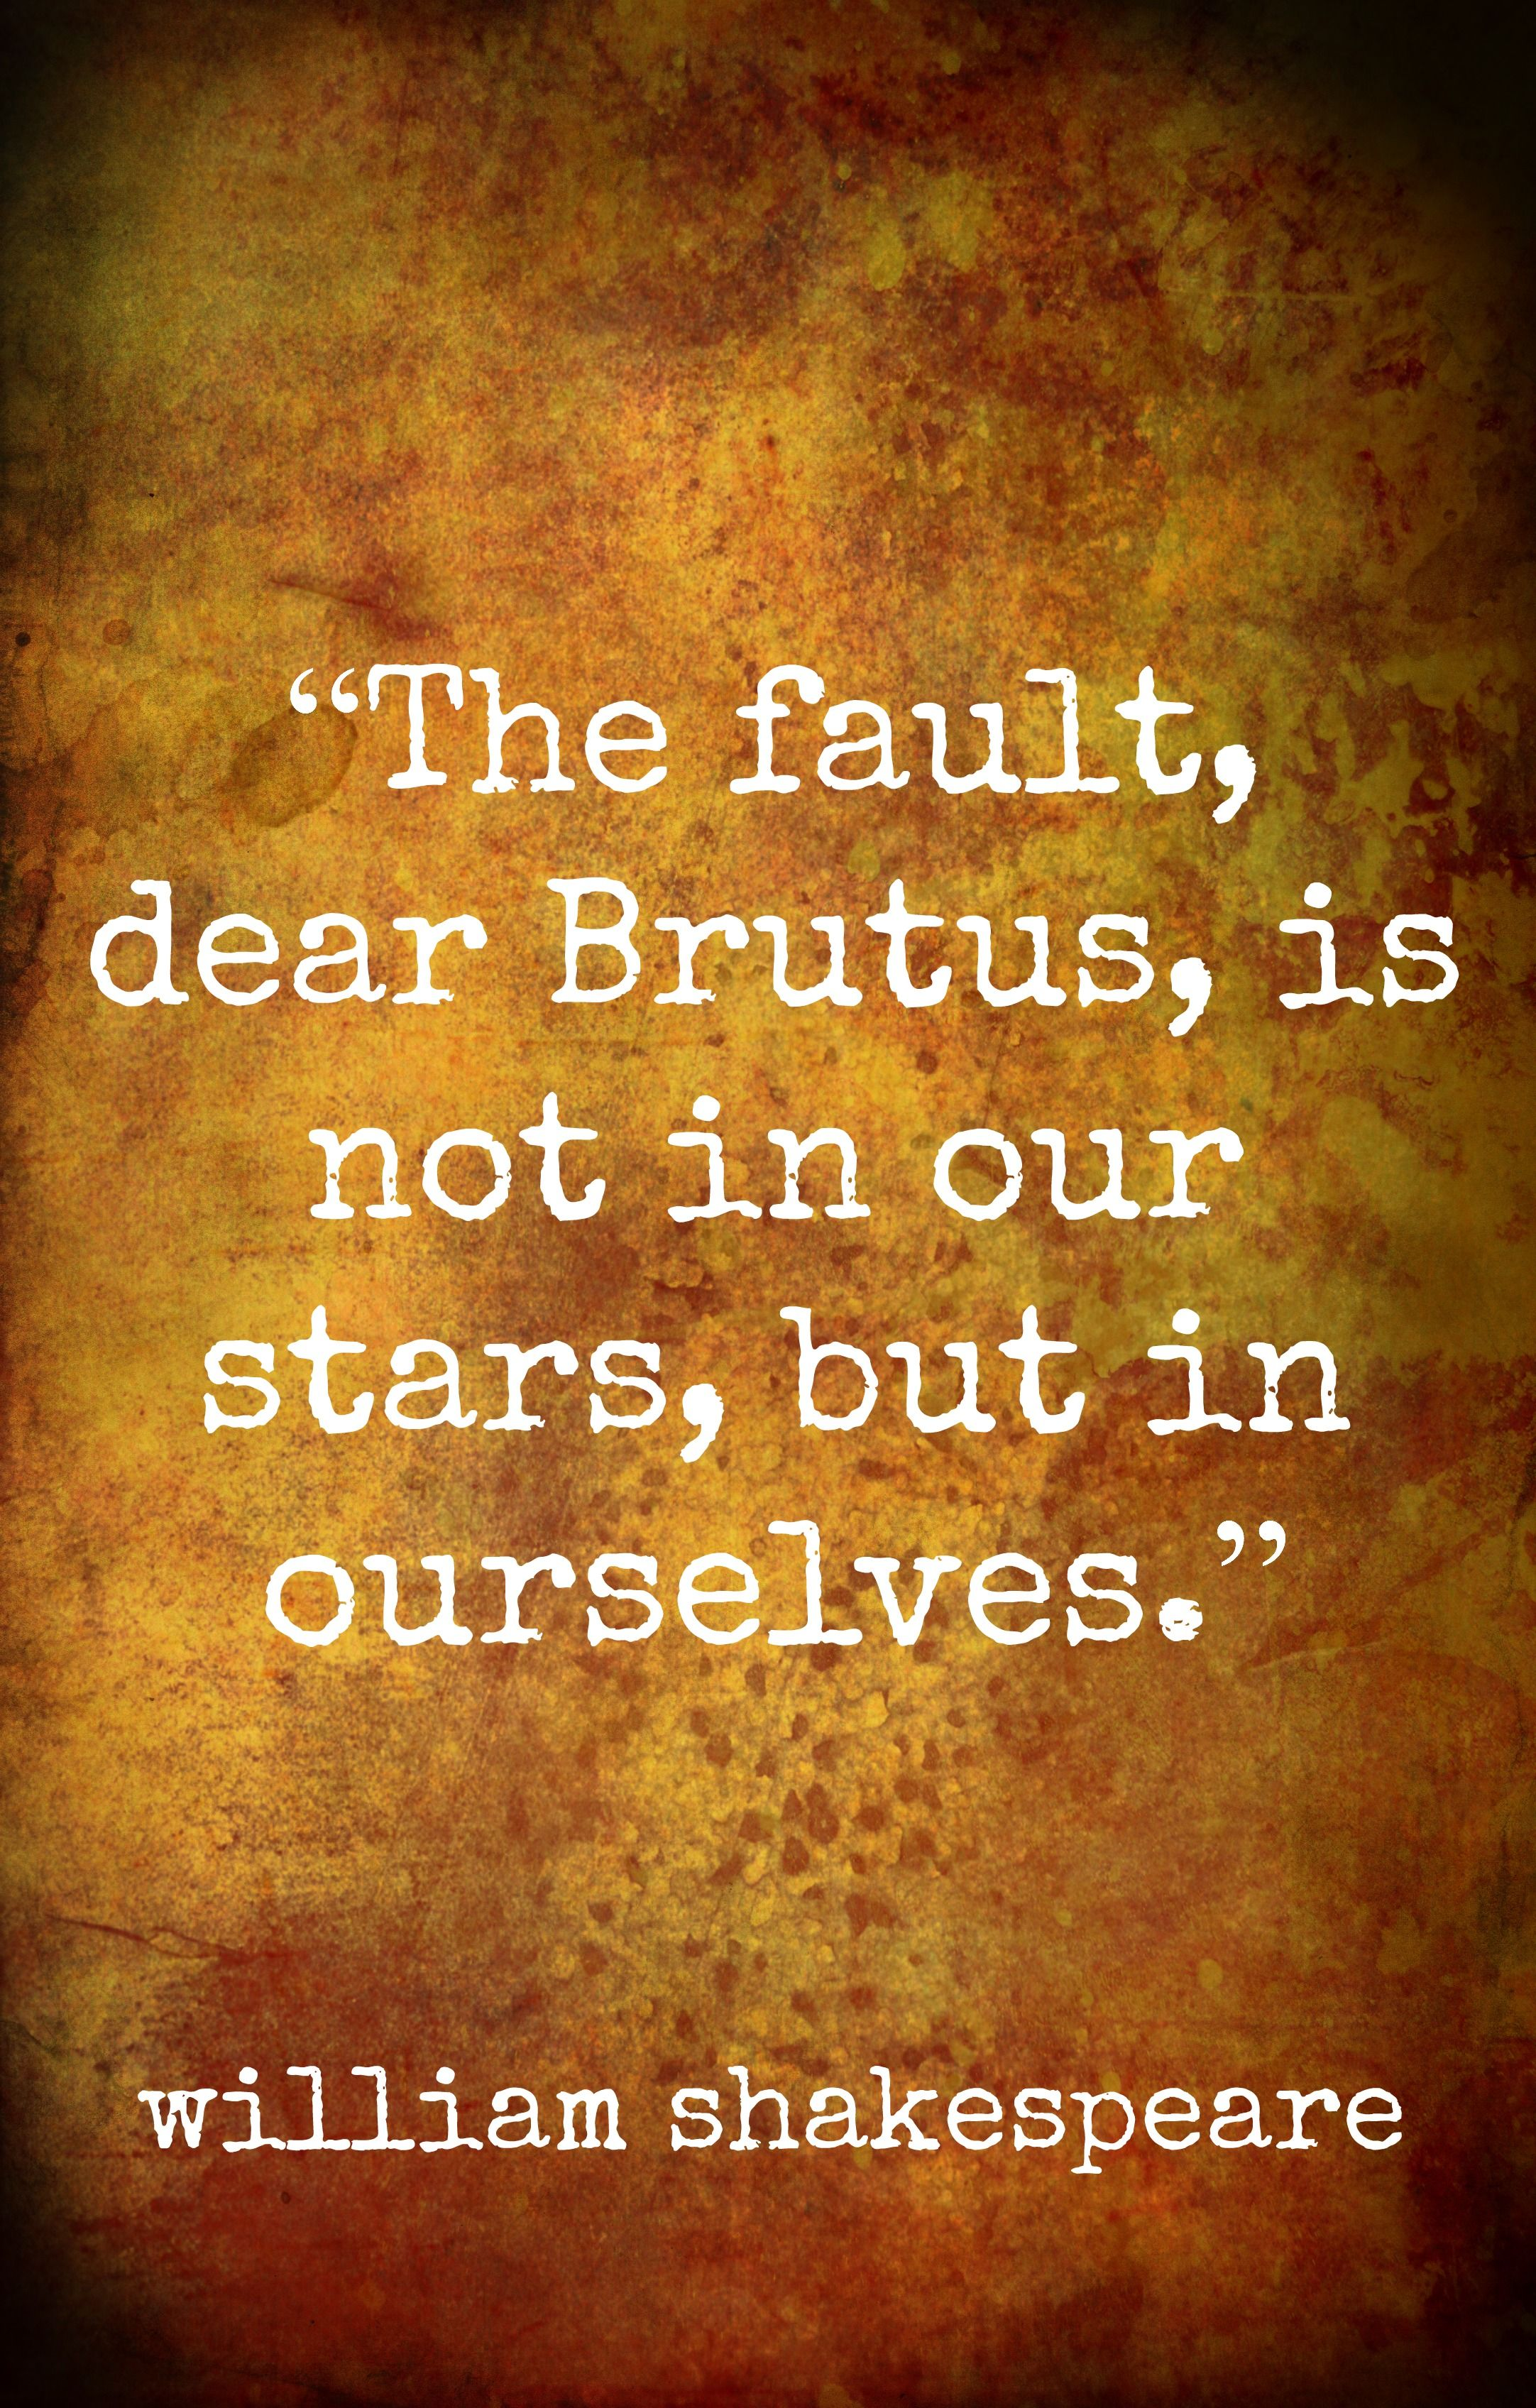 Quote By Cassius From The Play Julius Caesar I Ii 140 141